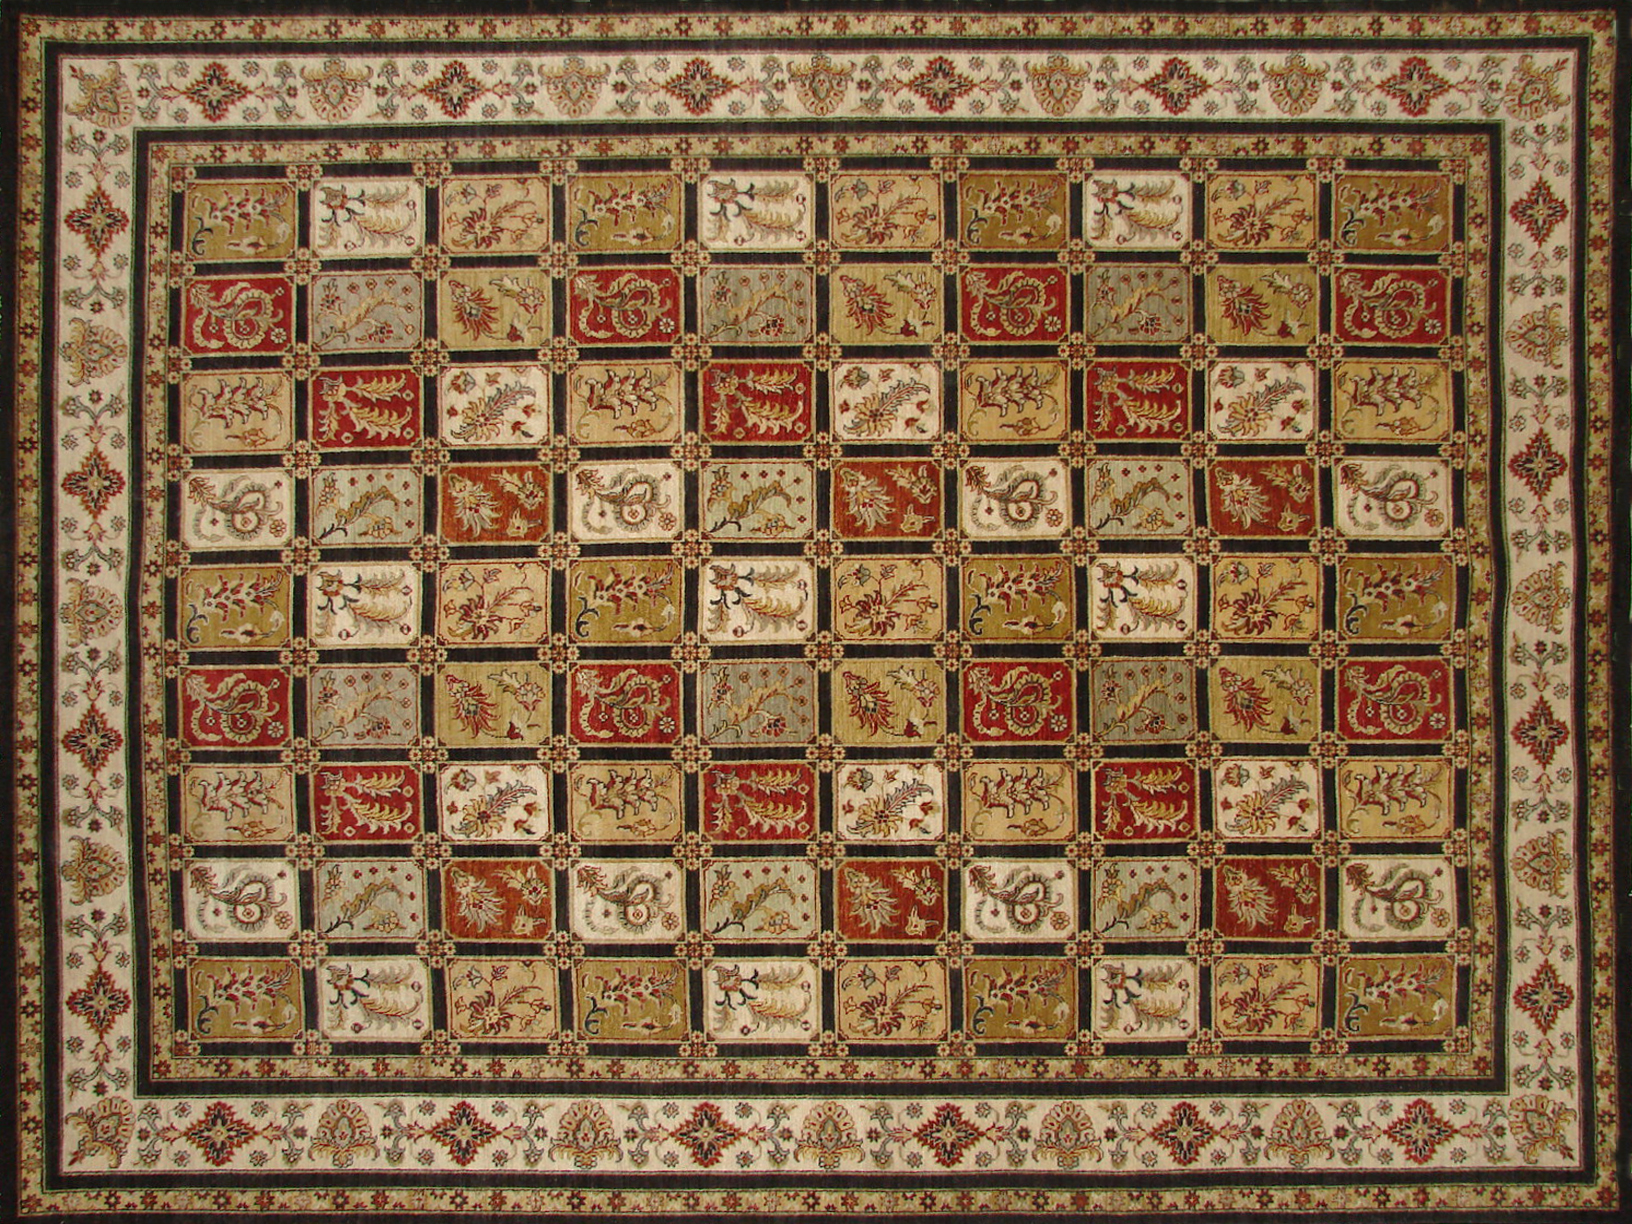 9x12 Traditional Hand Knotted Wool Area Rug - MR19607